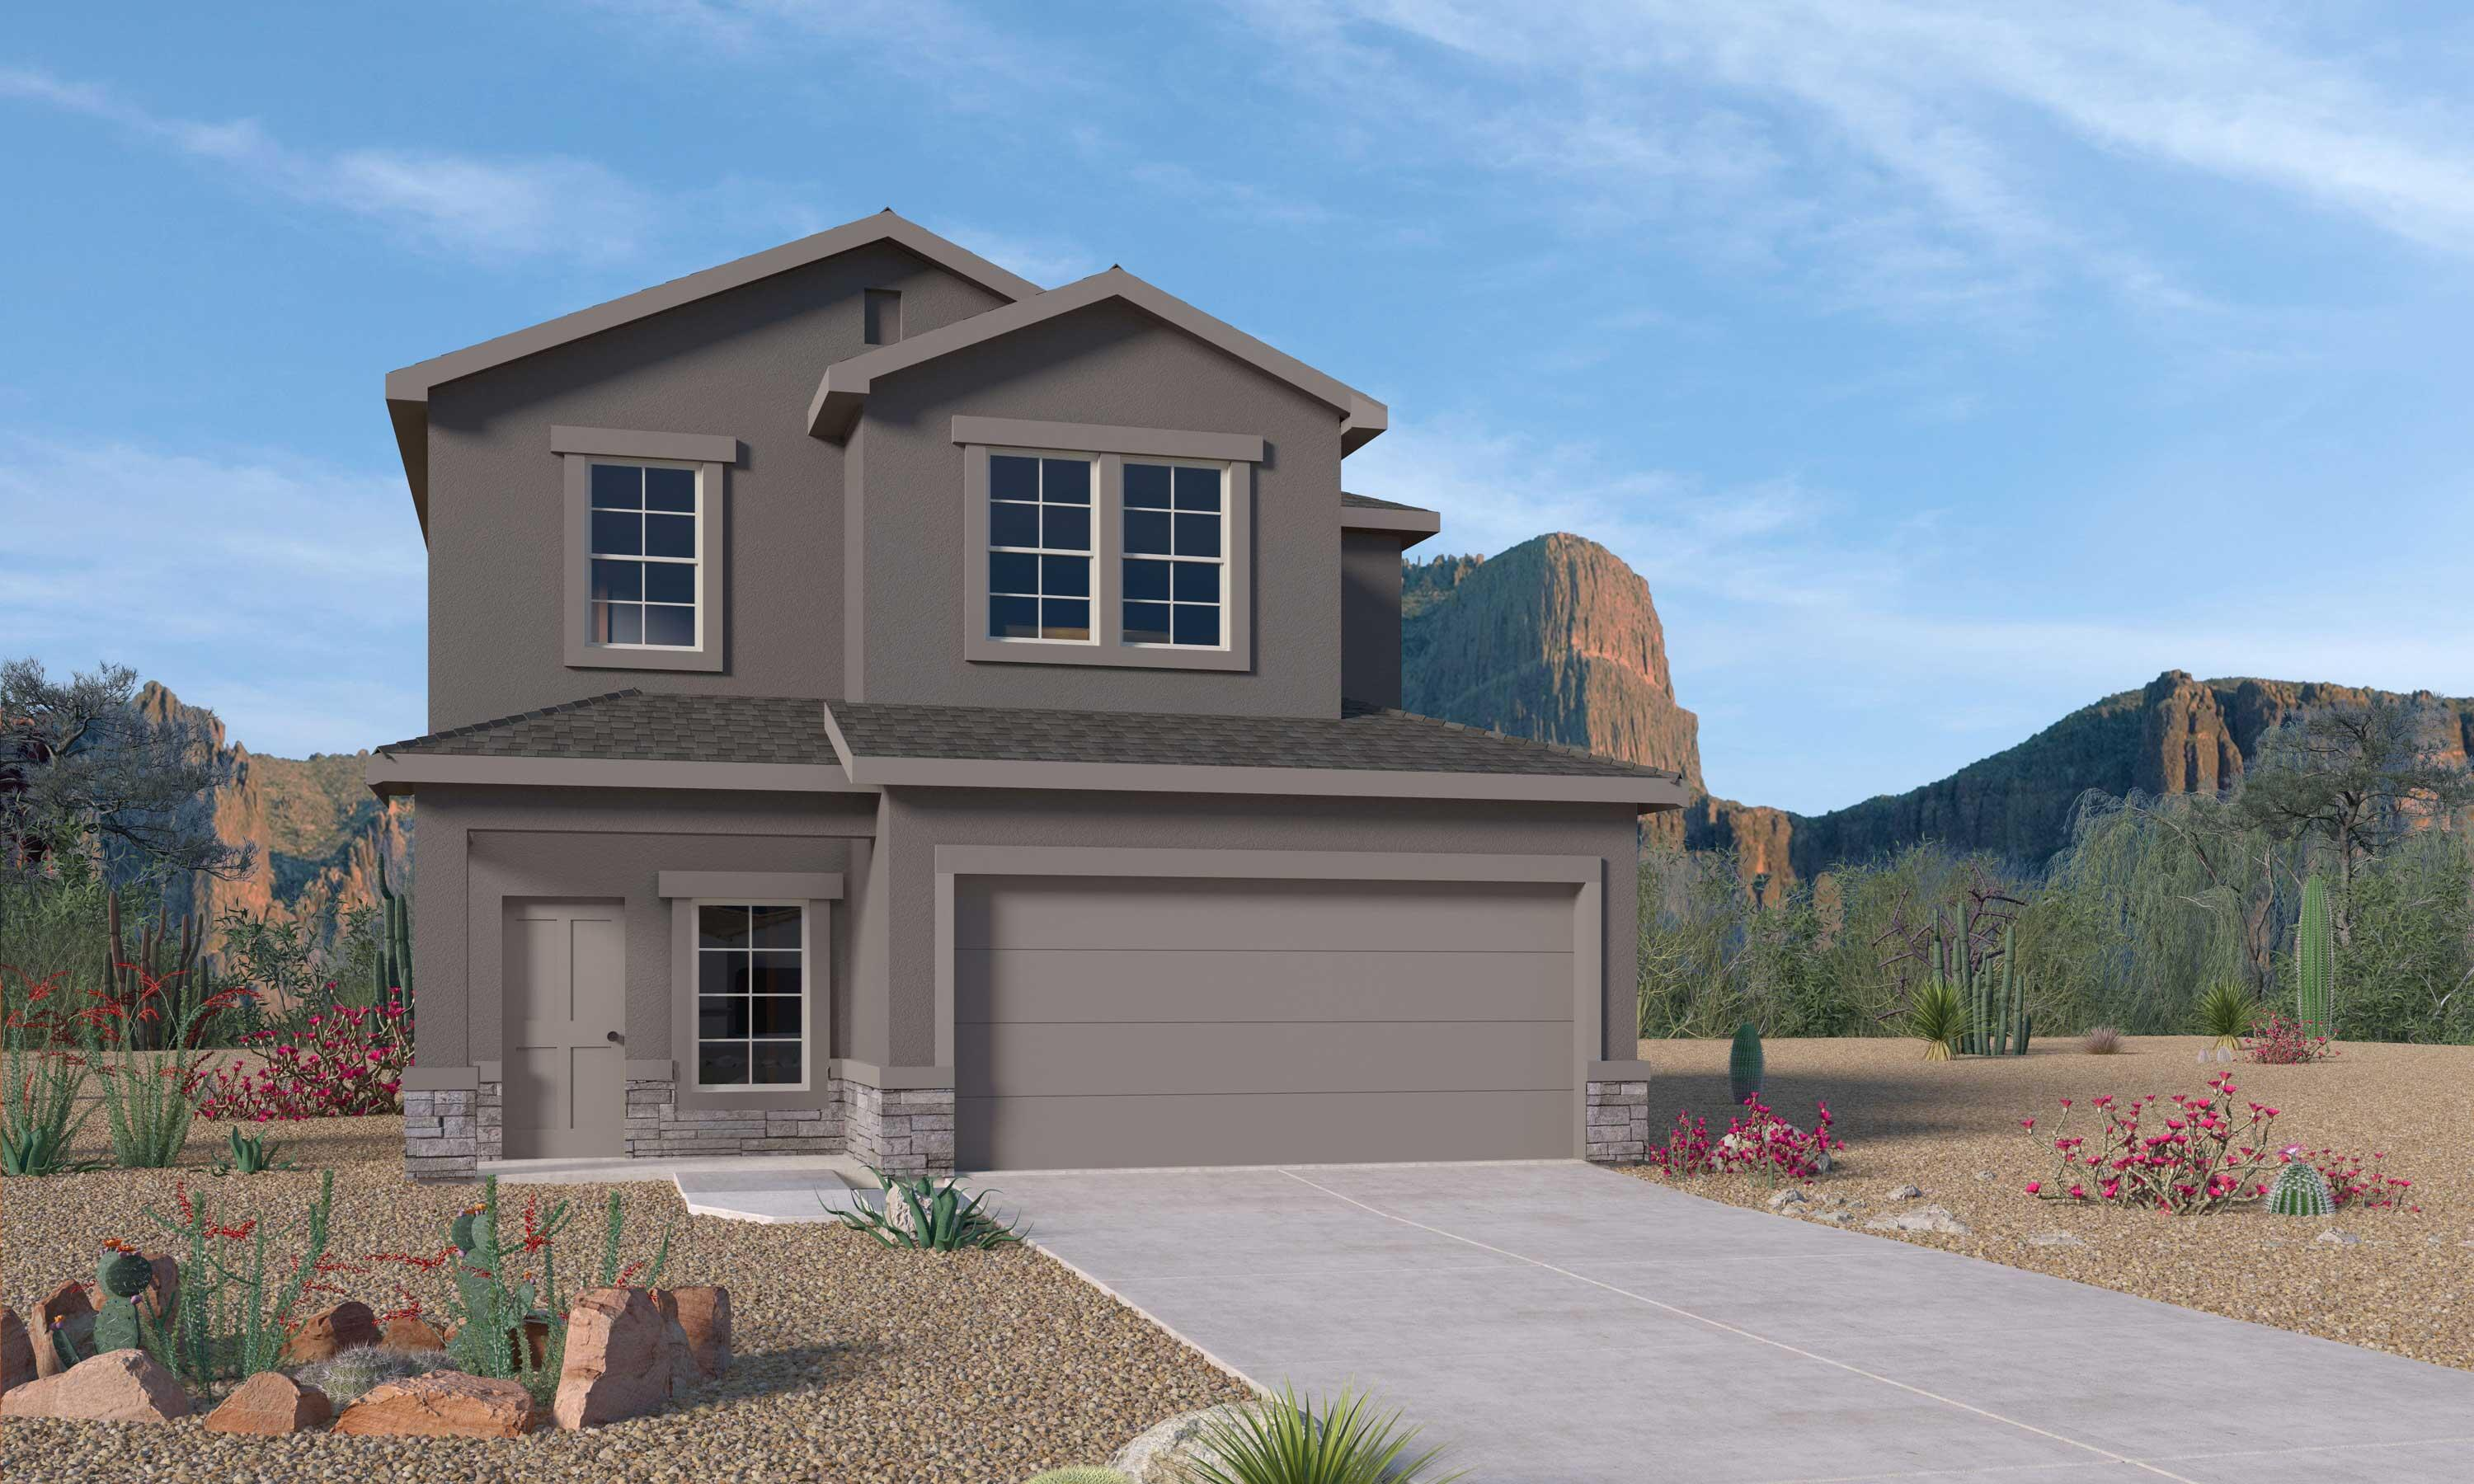 Our new Mountain Hawk community has eight brand new floorplans that reflect how families live today. Open concepts for entertaining as well as energy efficient features that will keep your utilities low and your comfort high. The Savannah plan is a two story with owner suite down stairs. This home is across the street from a grass lined park and also has incredible view of the Jemez from the living room and primary bedroom. Upstairs you will find a spacious loft and three bedrooms. This home also has features like granite countertops with tile backsplash in the kitchen as well as tile flooring in the wet areas. I know you expect to pay extra for features like this but they are included at Mountain Hawk. Pictures are of decorated model home of same plan. Colors and options may differ